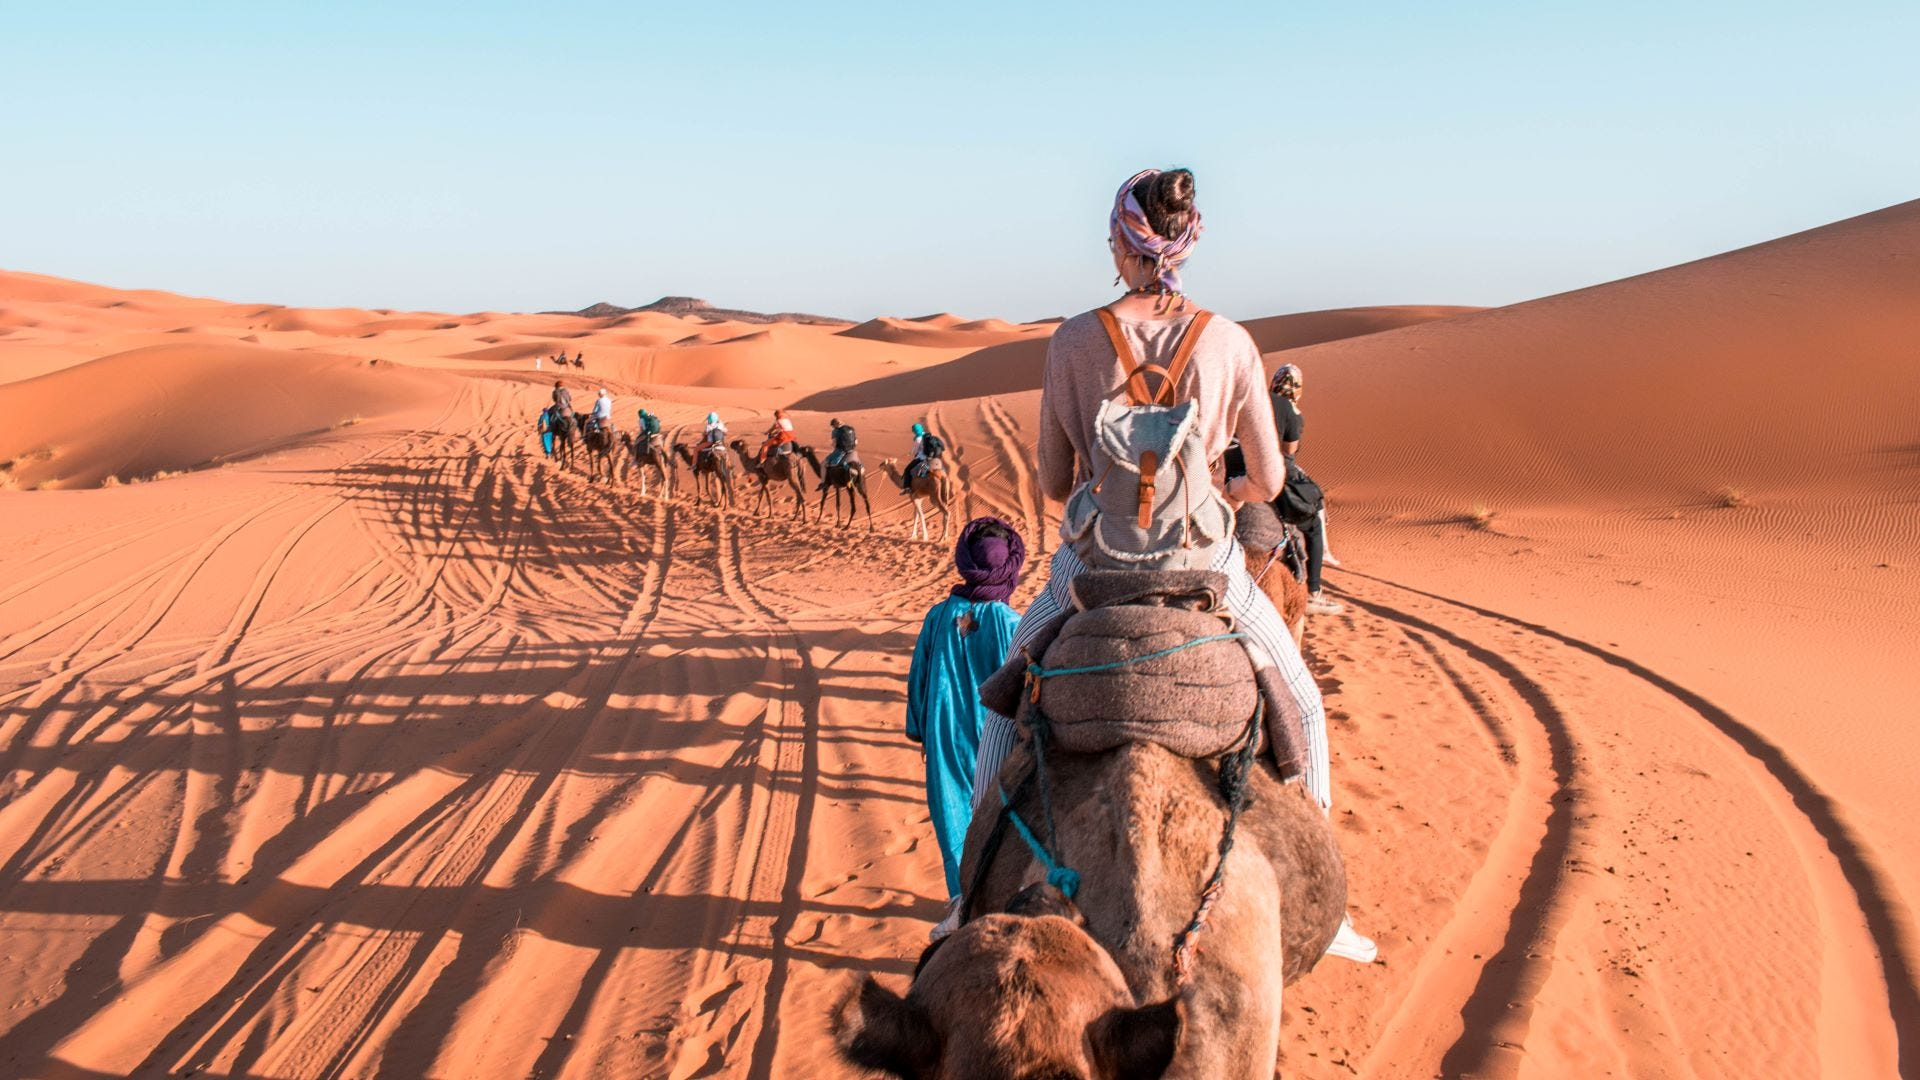 A long line of people riding camels in the Sahara Desert.